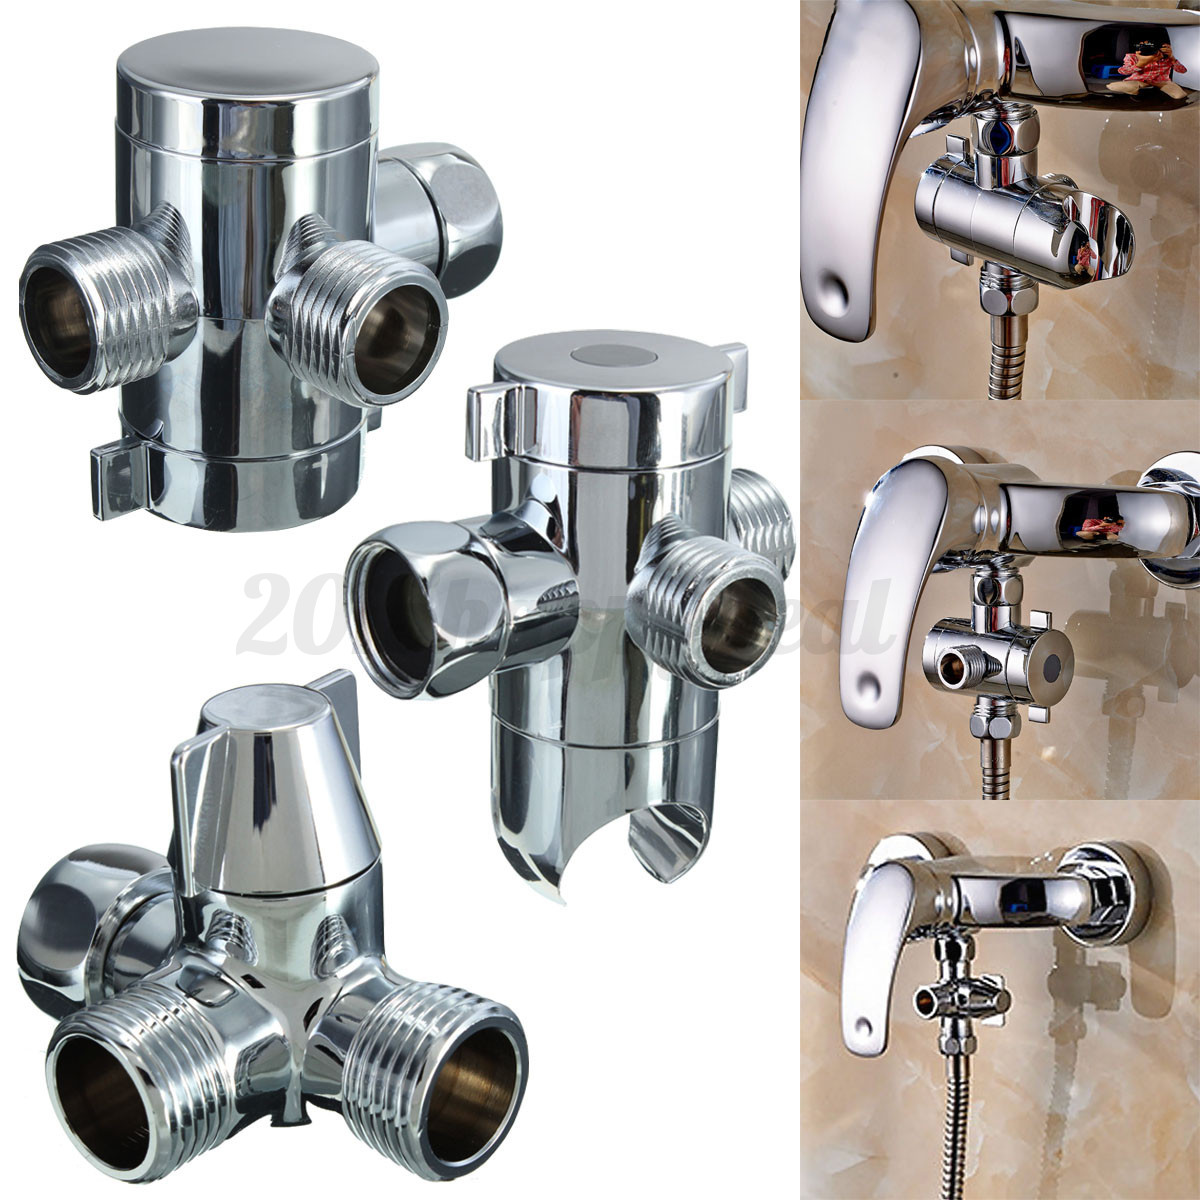 1 2 sliver three waterway switch shower head t adapter bath tub trip lever bath tub stopper replacement or